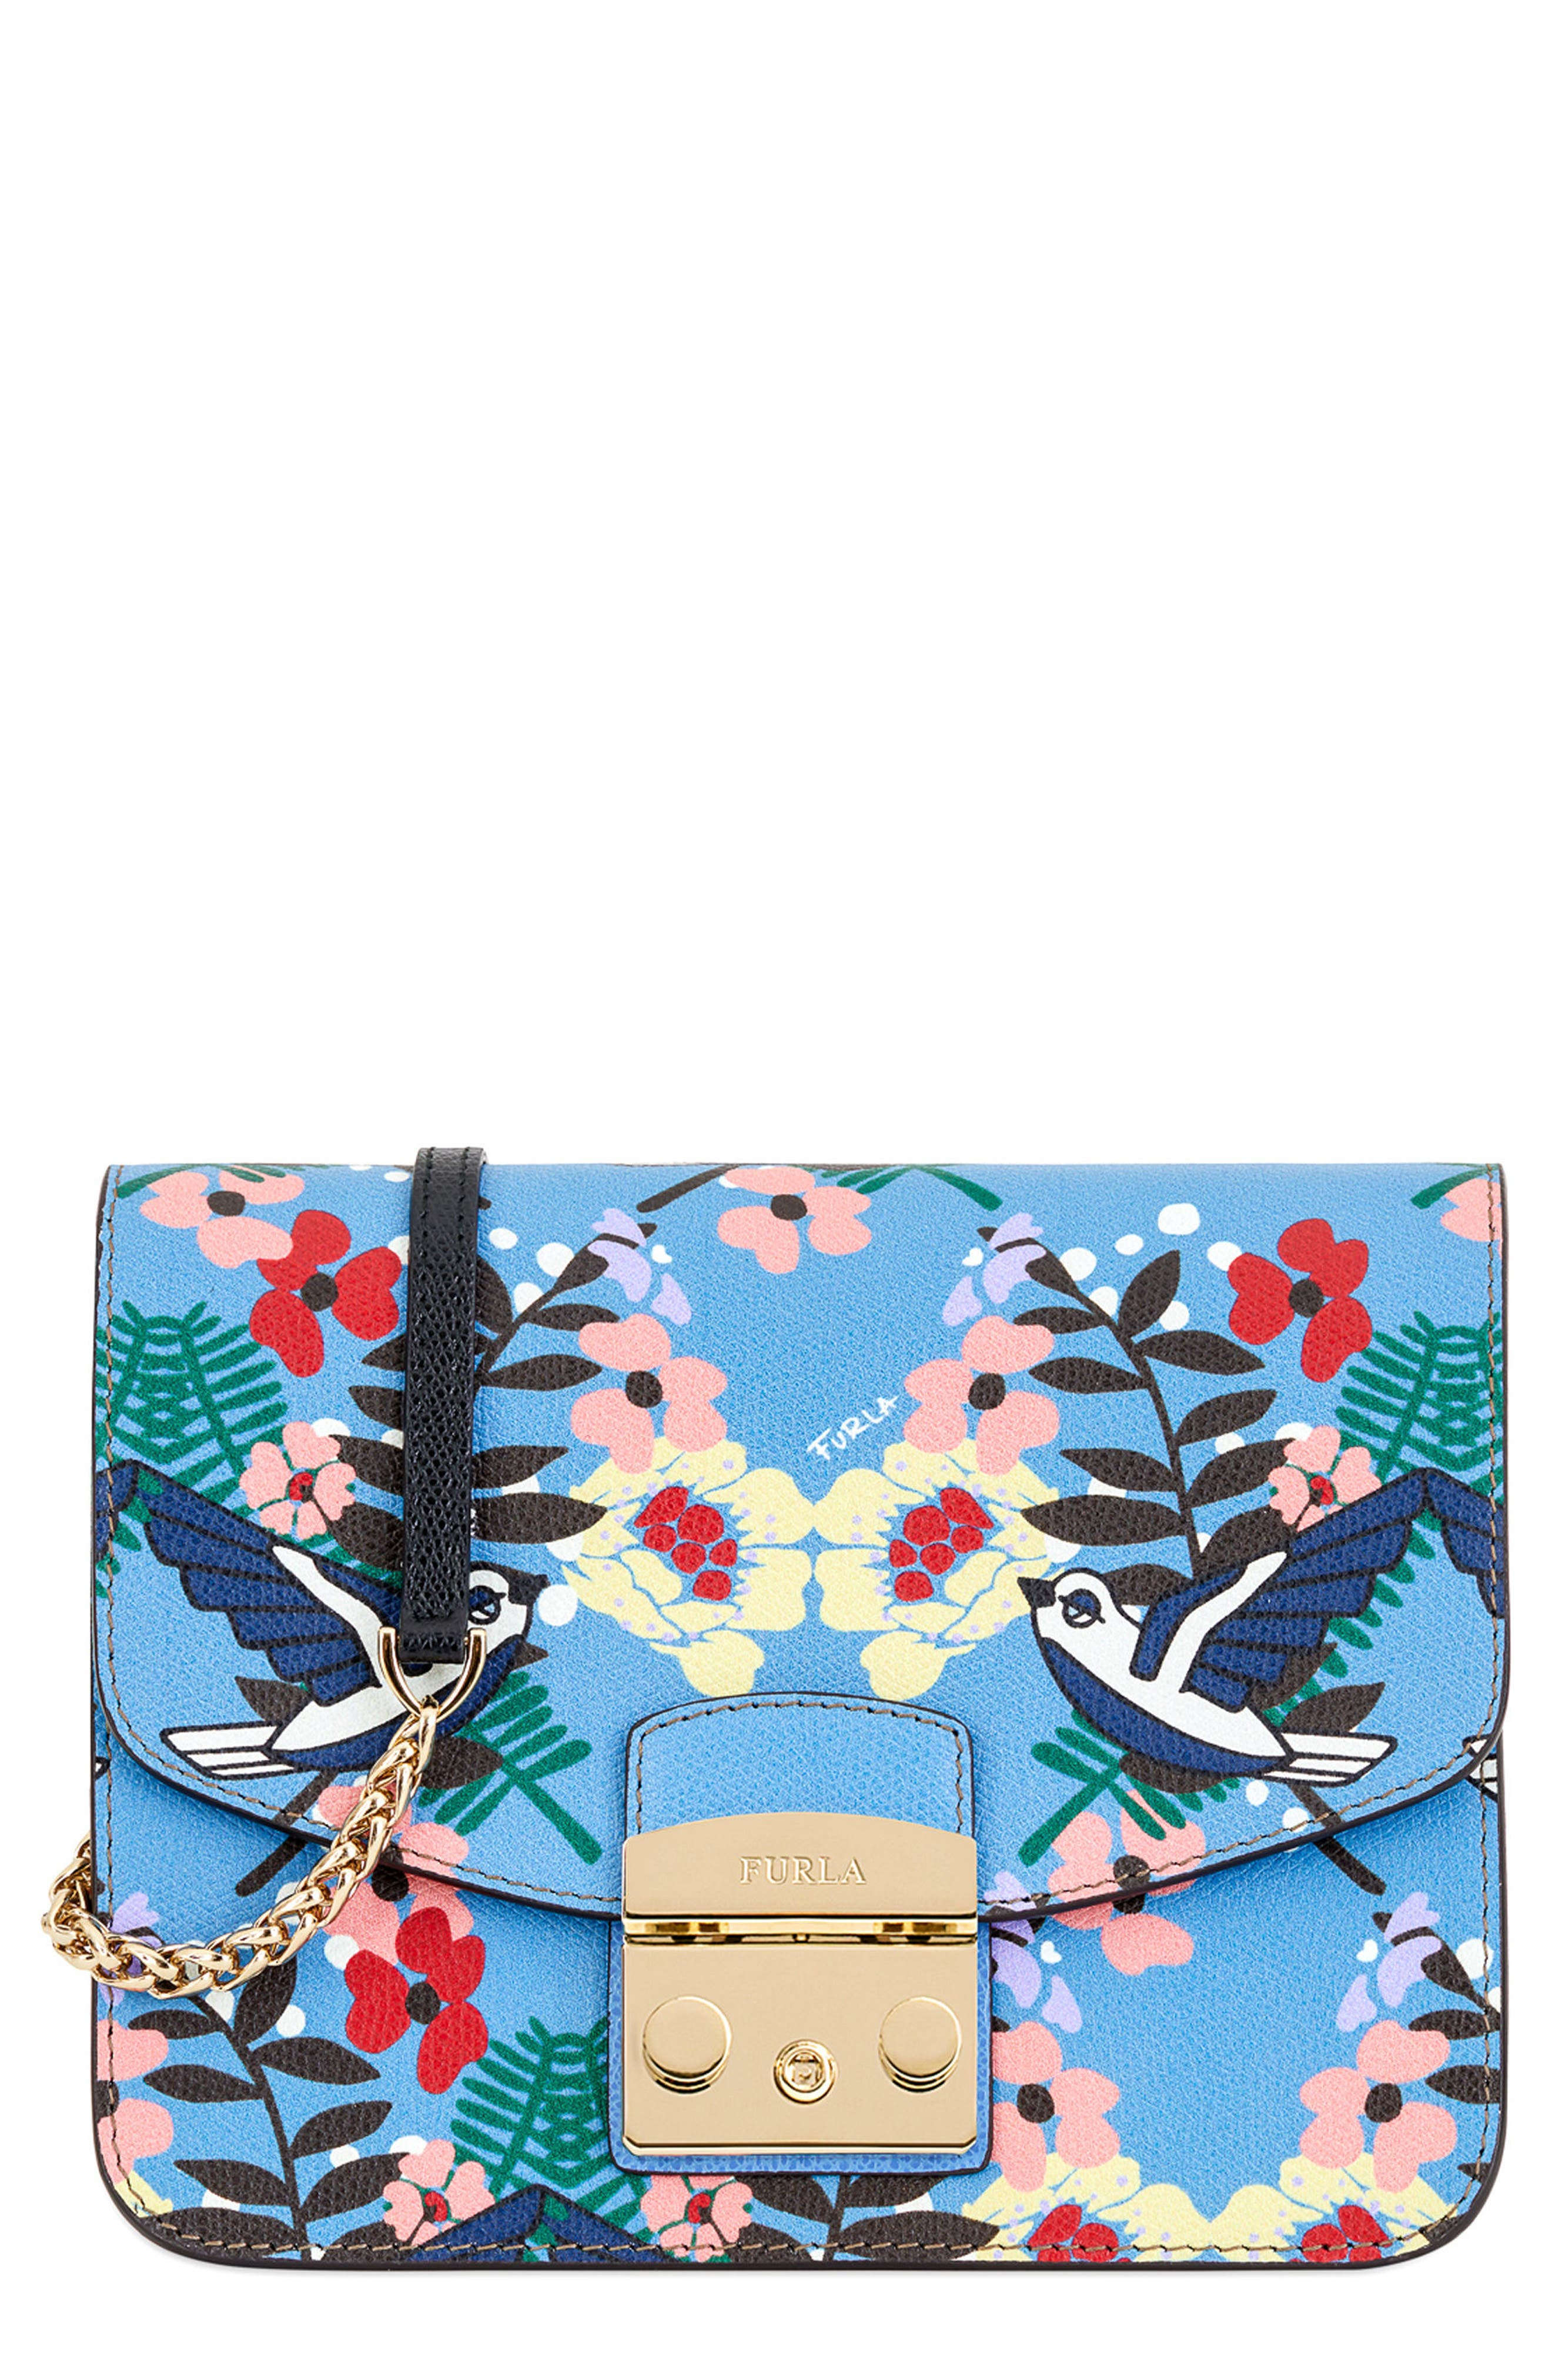 Small Metropolis Print Leather Crossbody Bag,                             Main thumbnail 1, color,